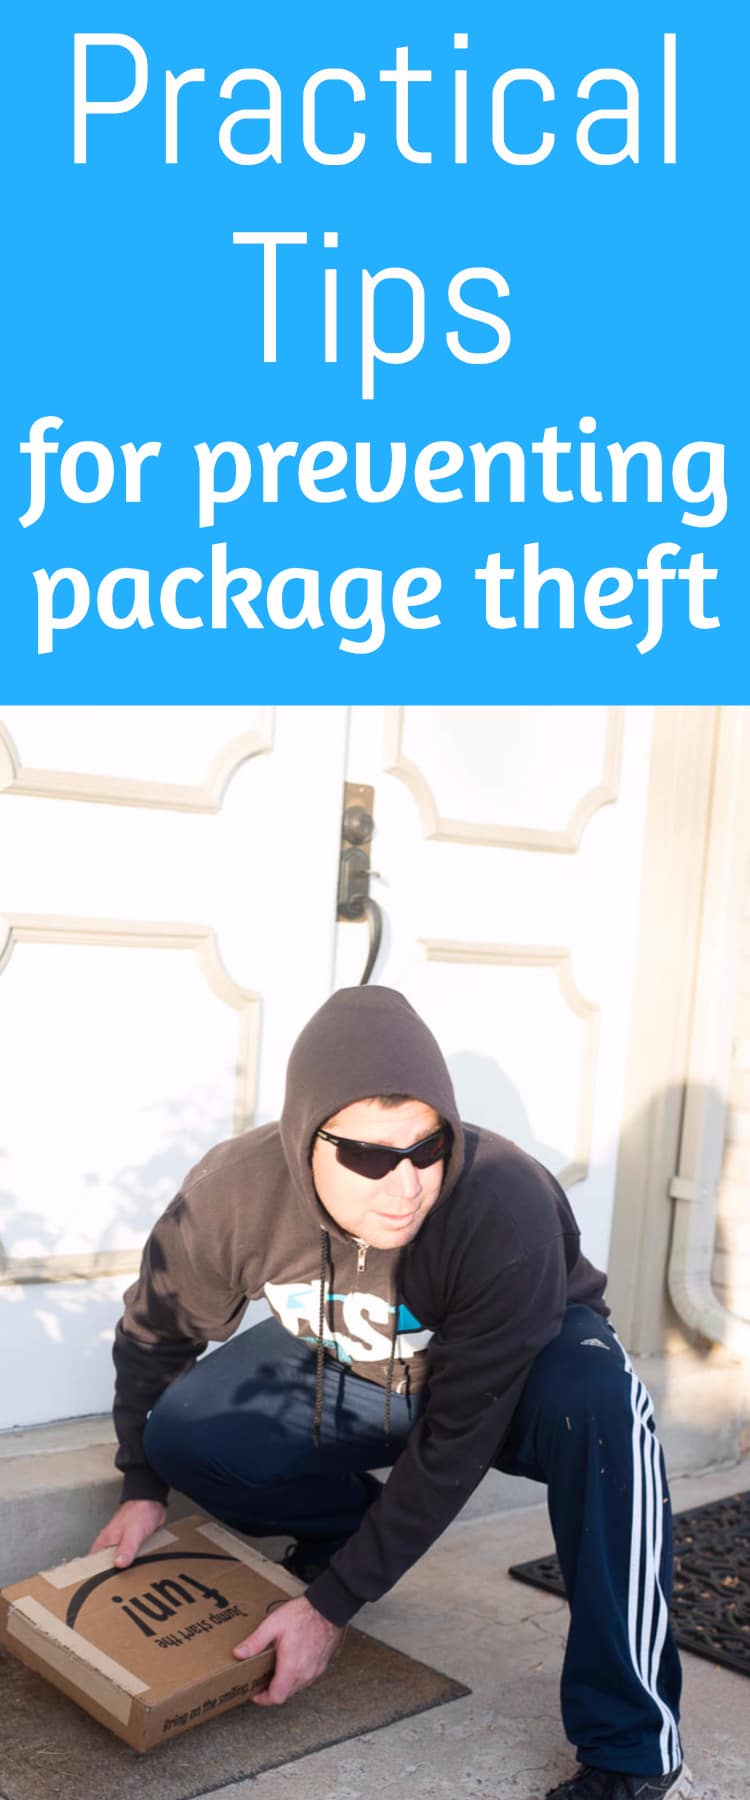 Home Security / DIY Home Security / Travel / Family / Theft